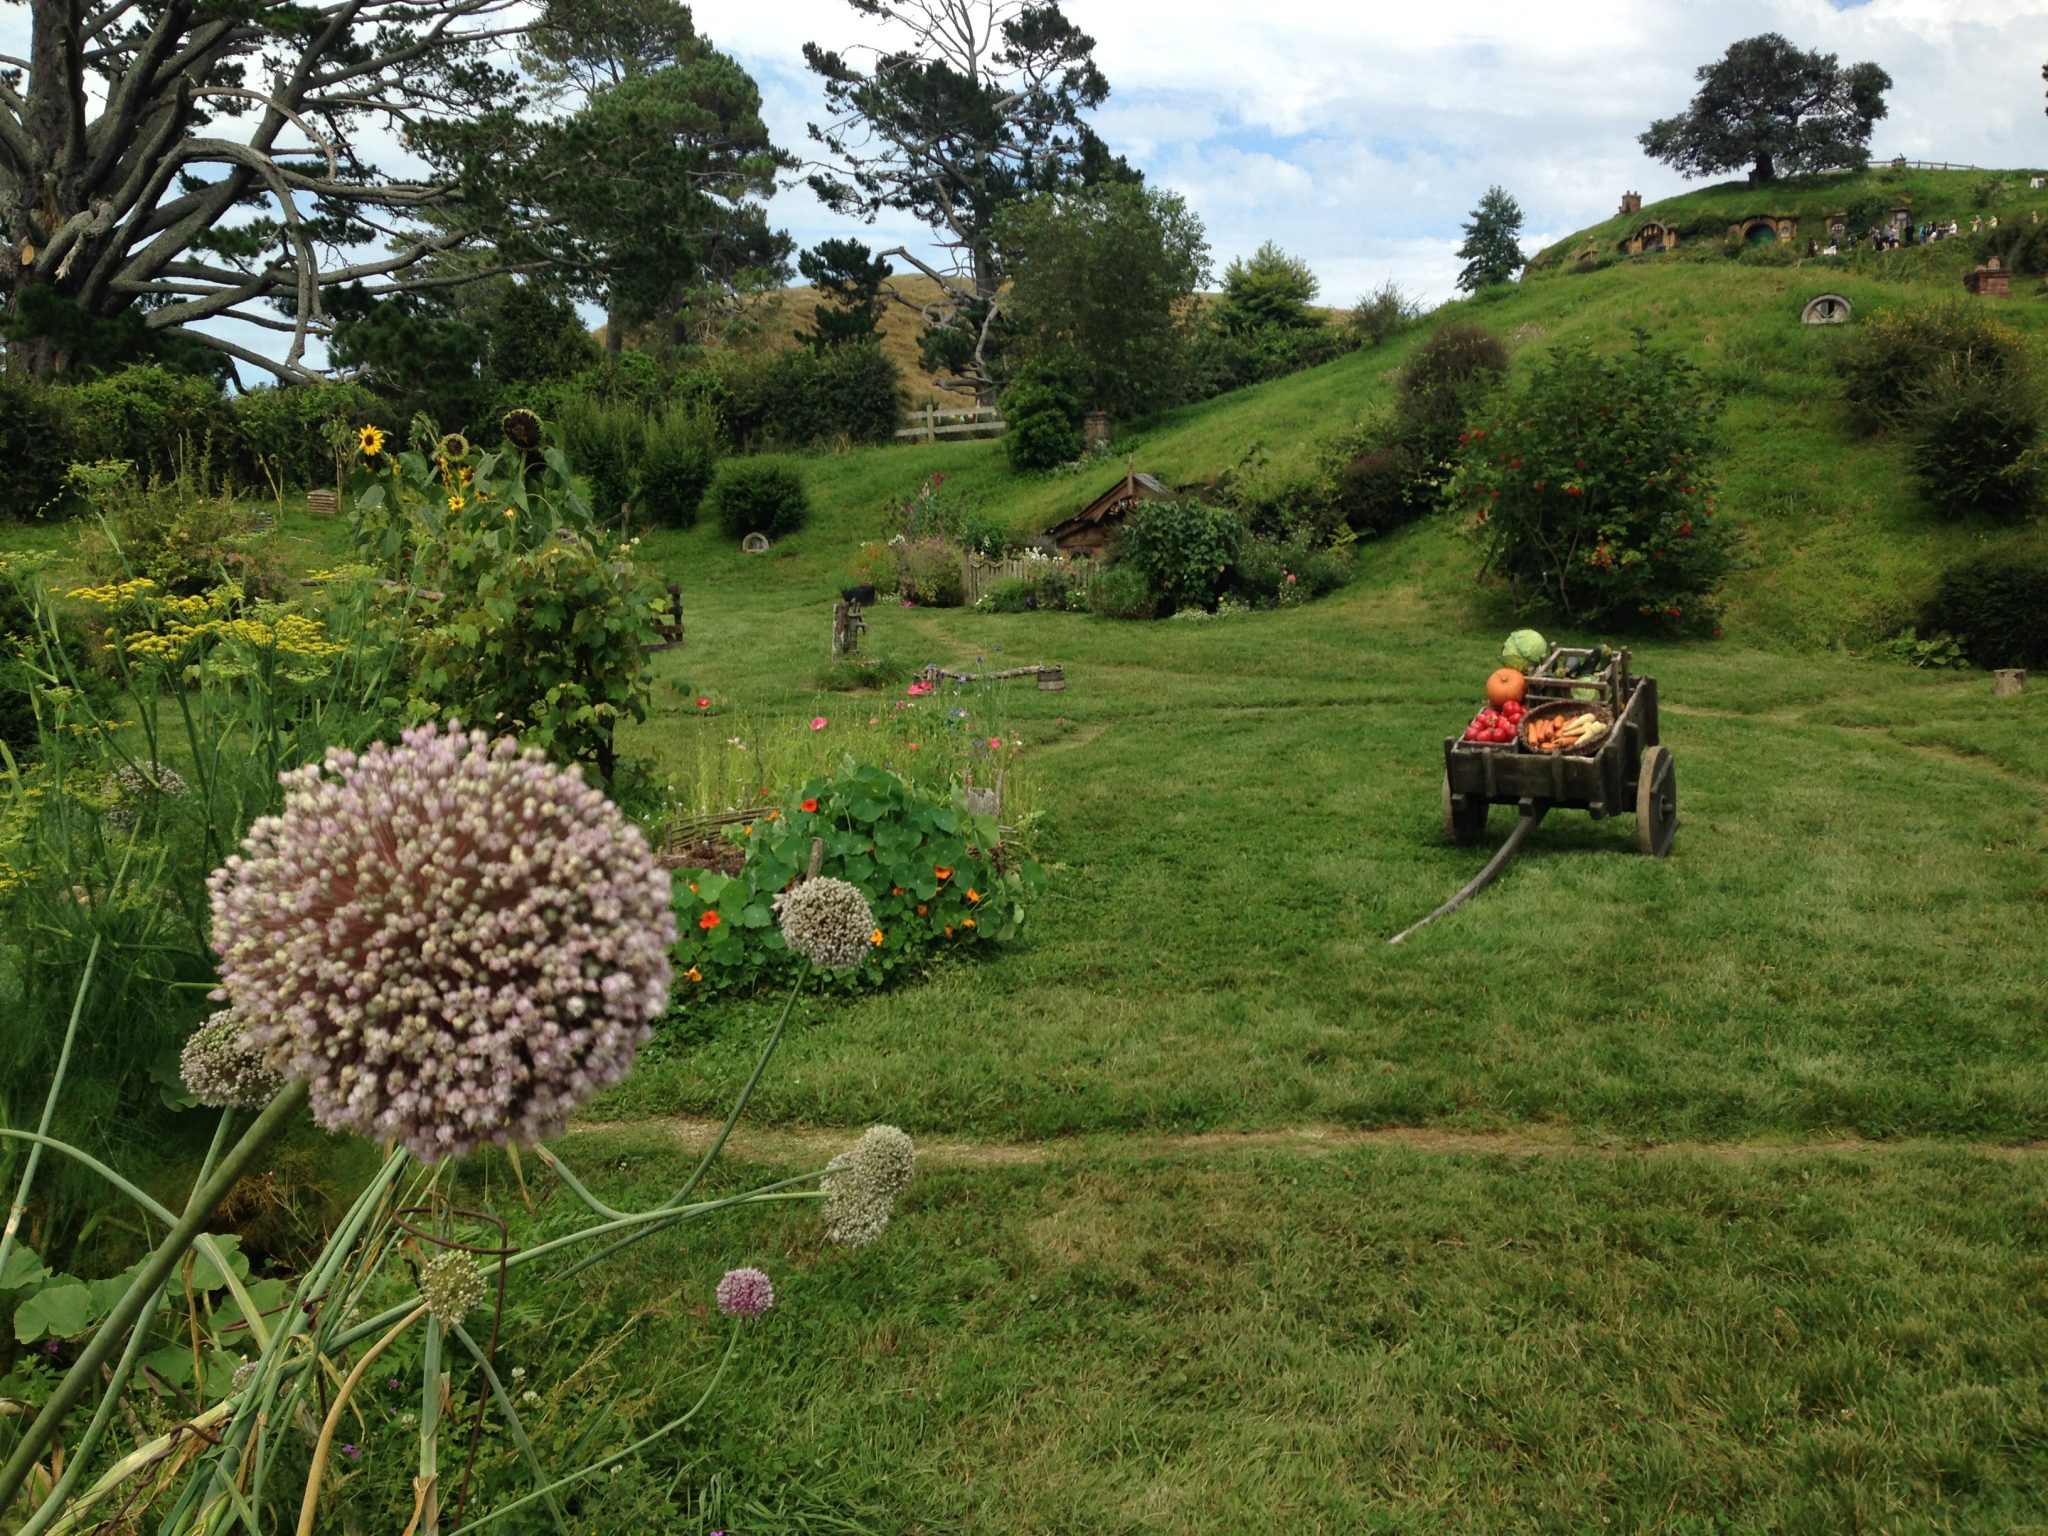 Garden, Hobbiton Movie Set, New Zealand.